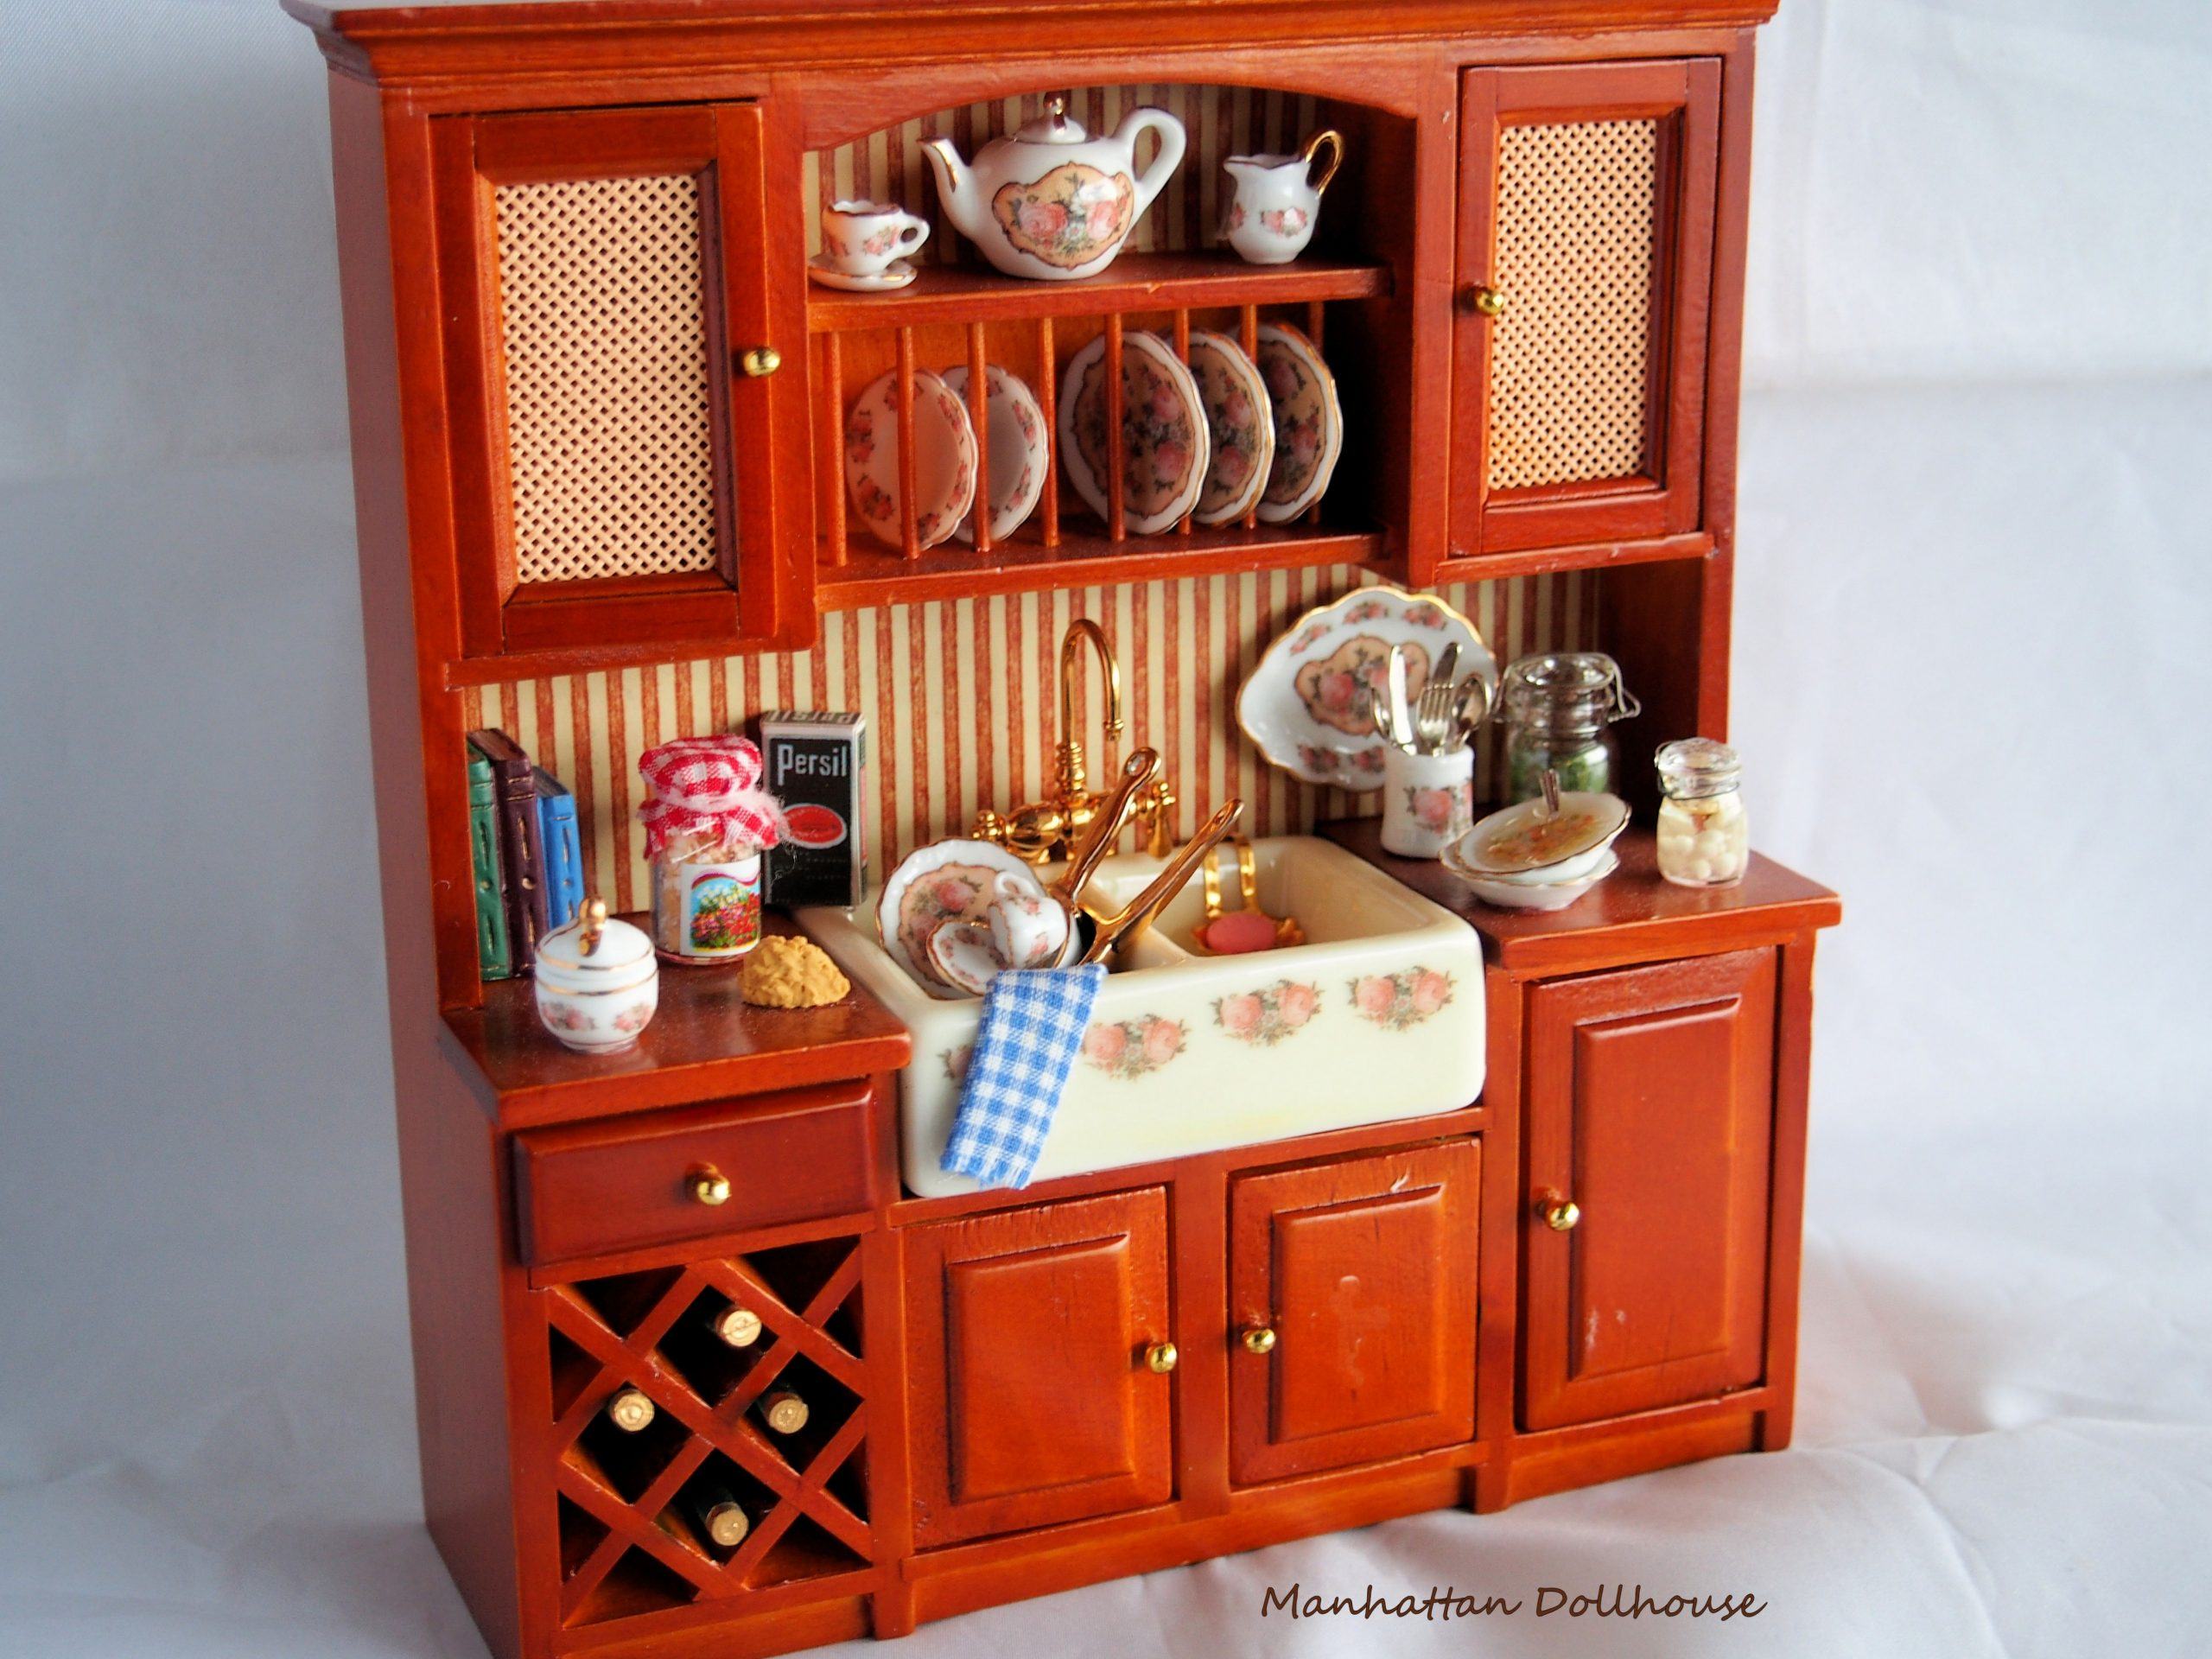 Miniature Kitchen Cabinet with Accessories - $9